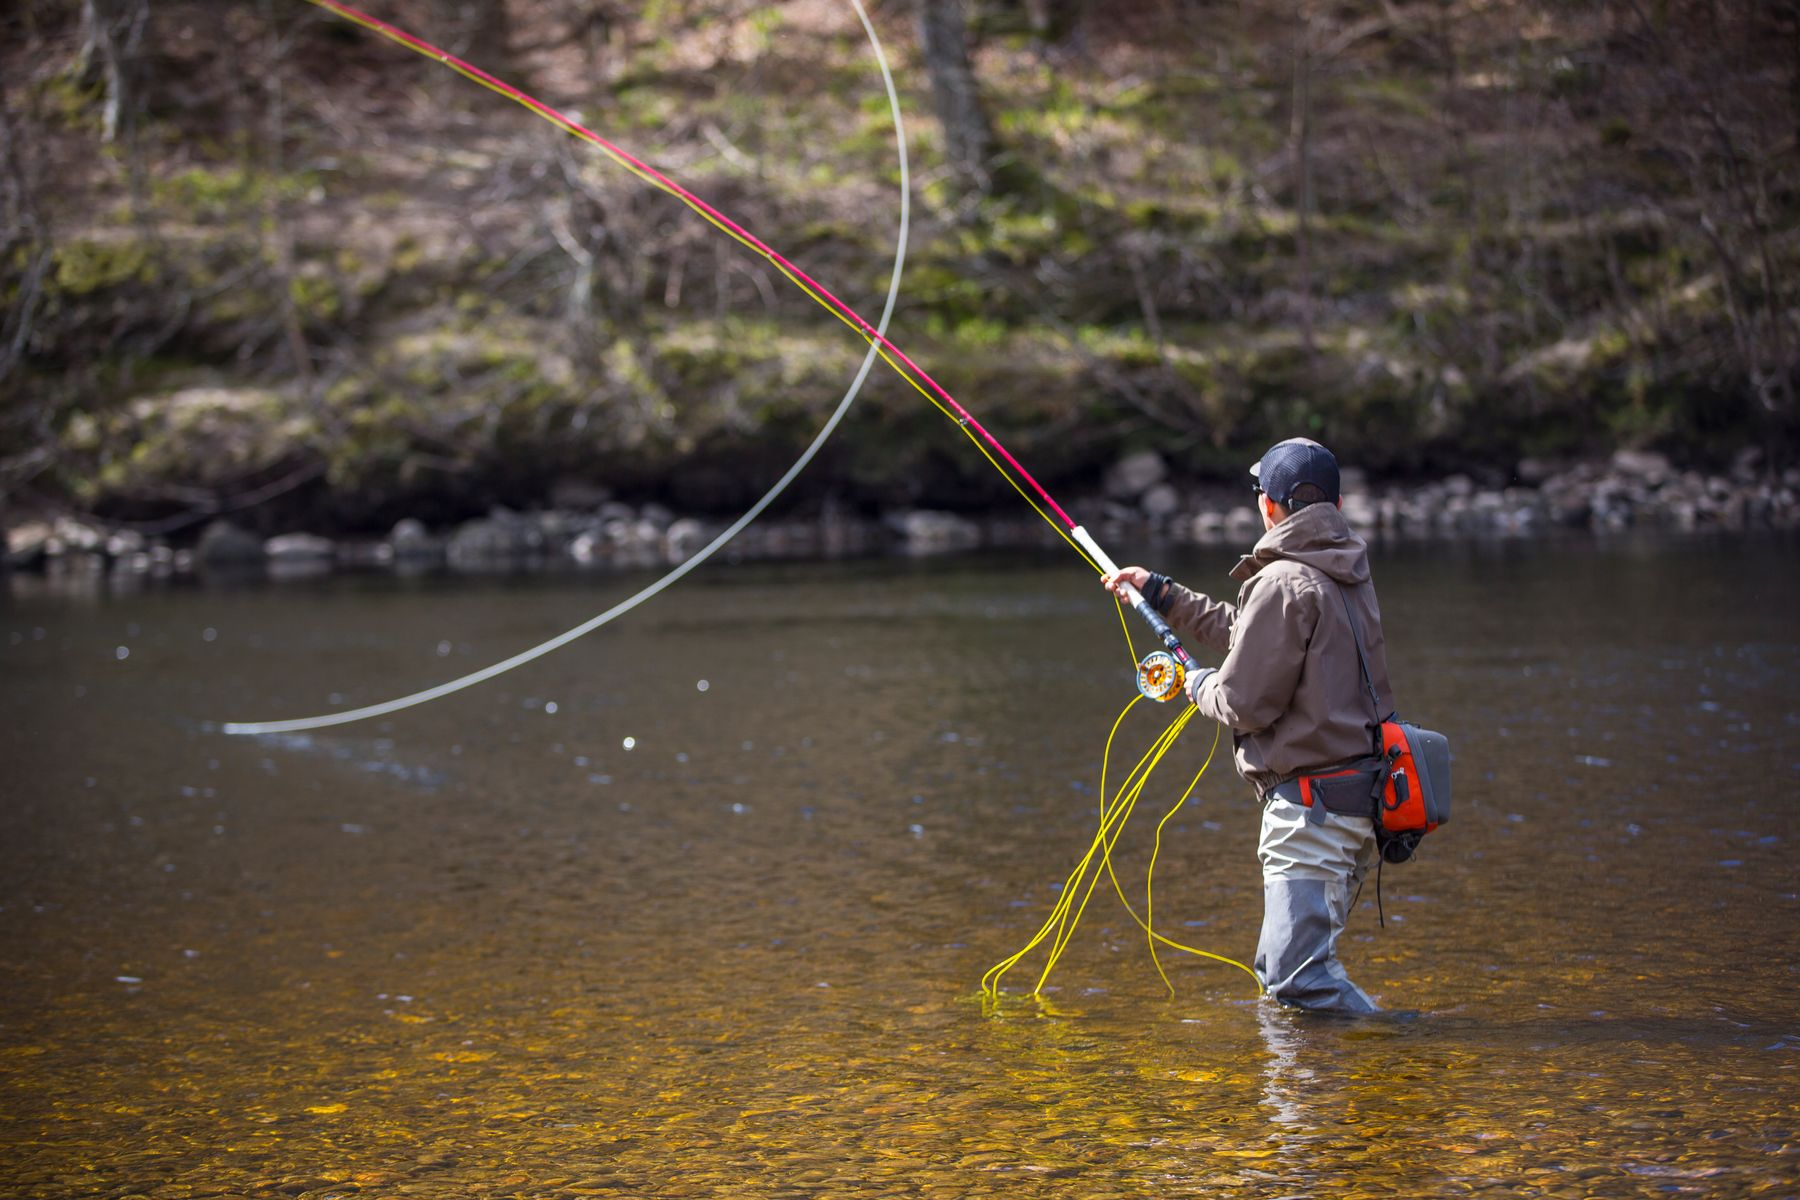 Fly fishing in the River Tay, Perth, Scotland